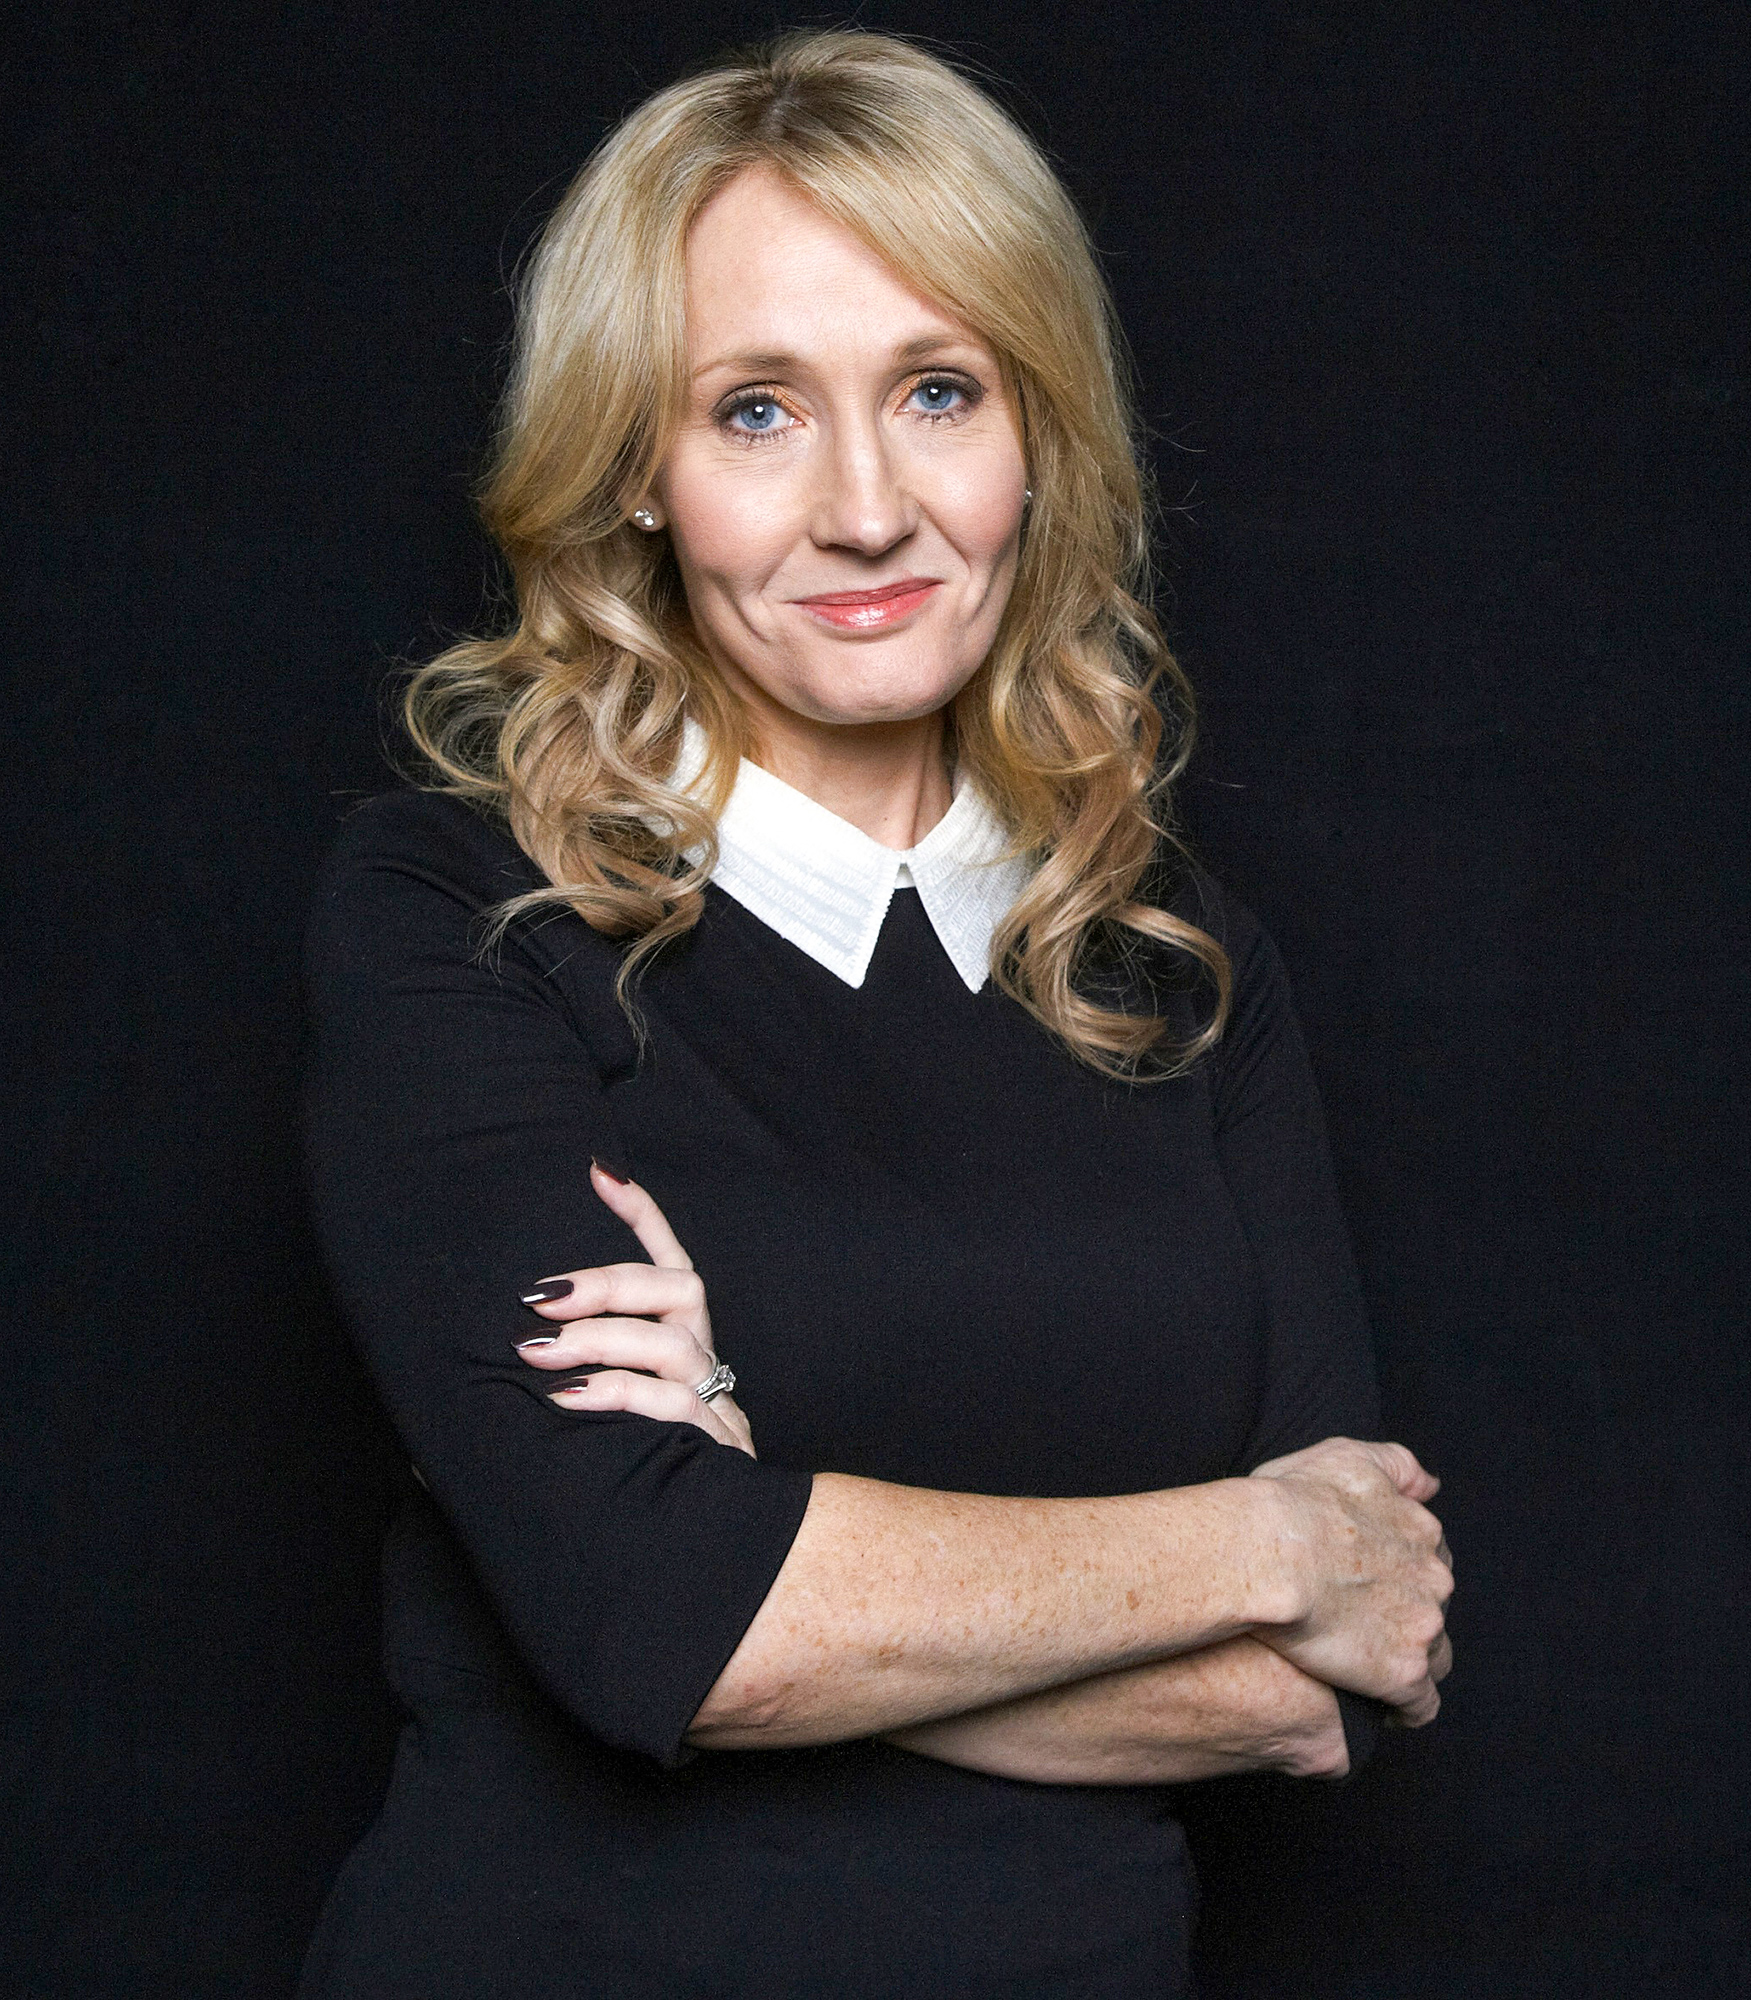 J.K Rowling - J.K Rowling was the WORLD's first billionaire author. She donated so much of her money, that she lost her billionaire rank, but continues to be one of the wealthiest authors. Today, she continues to donate and is even the president of the charity Gingerbread.